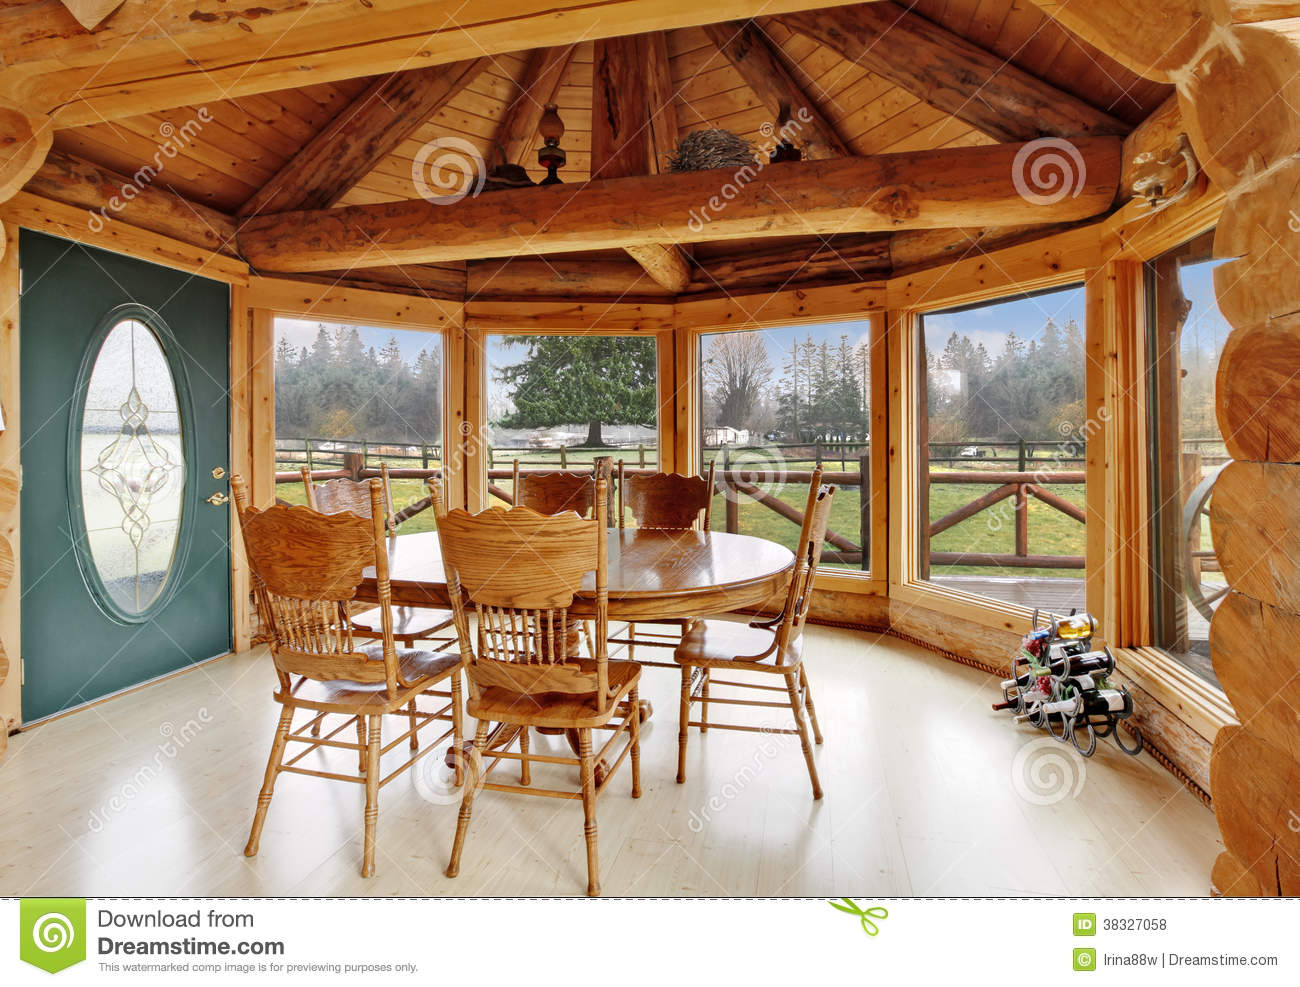 Beautiful Dining Room In Log Cabin House Royalty Free Stock Photos - Image: 38327058